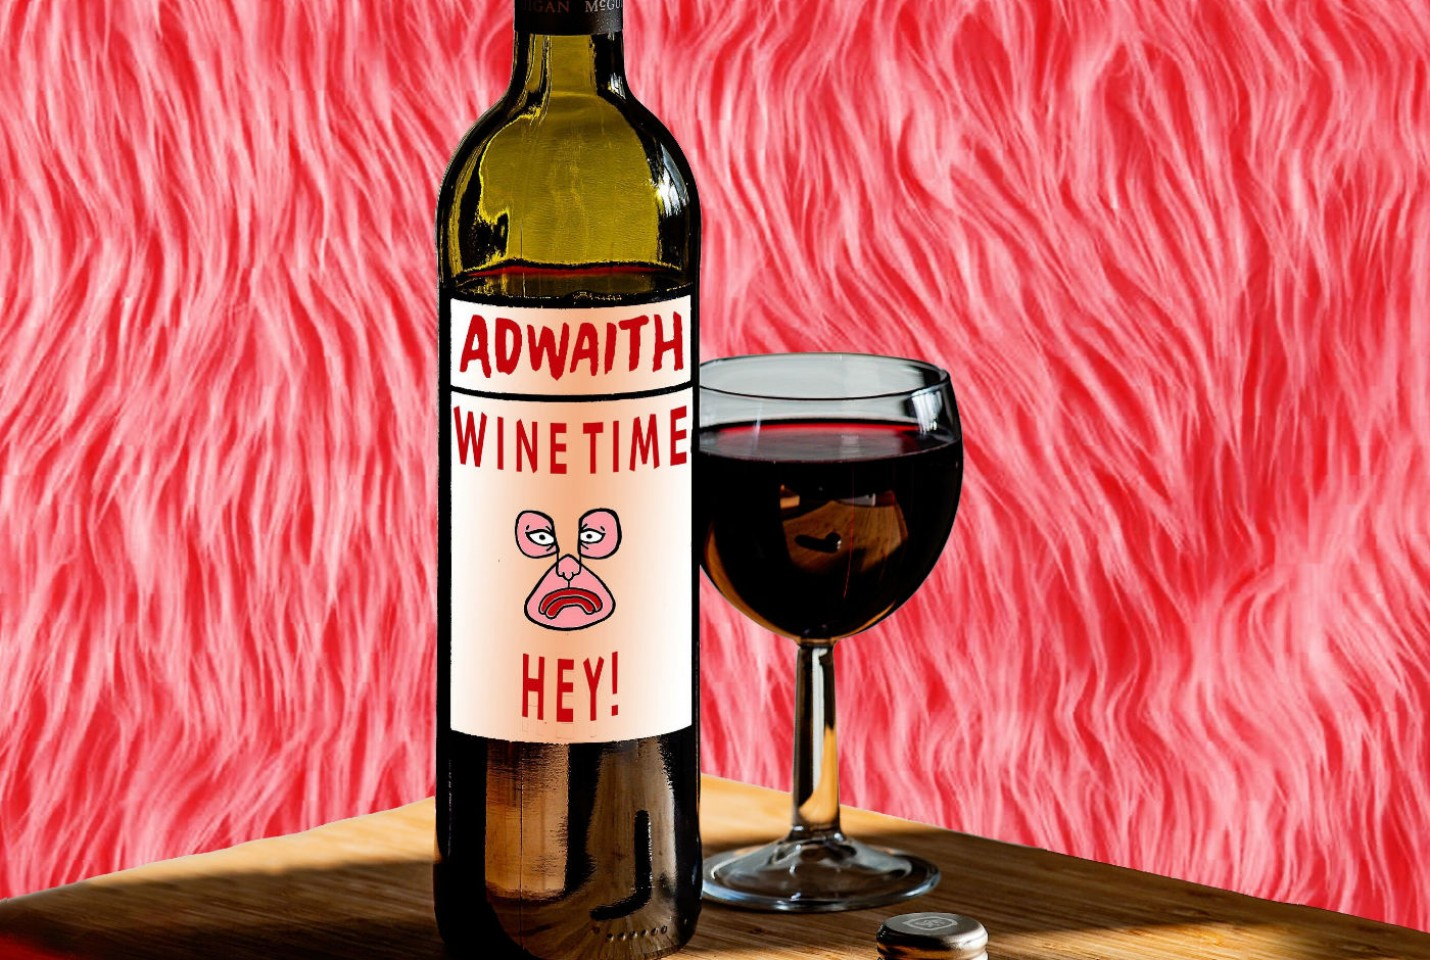 New Double Single 'HEY!/Wine Time' from Adwaith